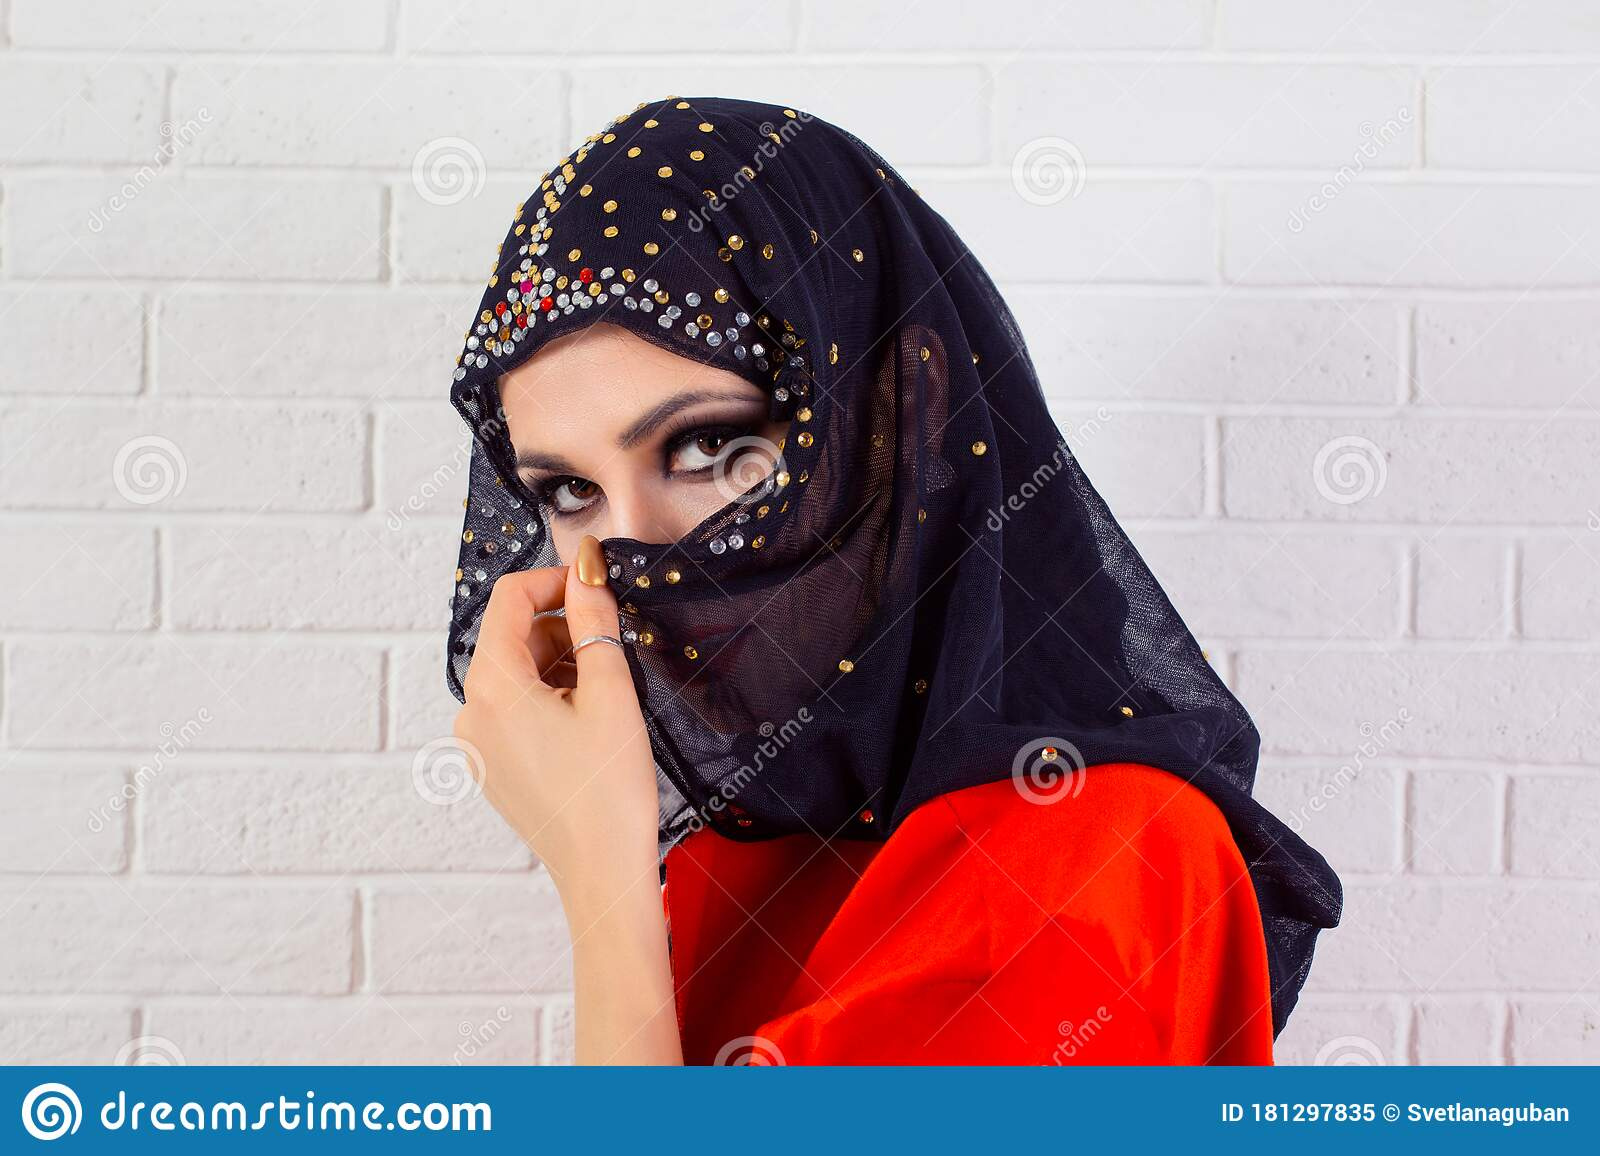 Sexi girl muslim How To